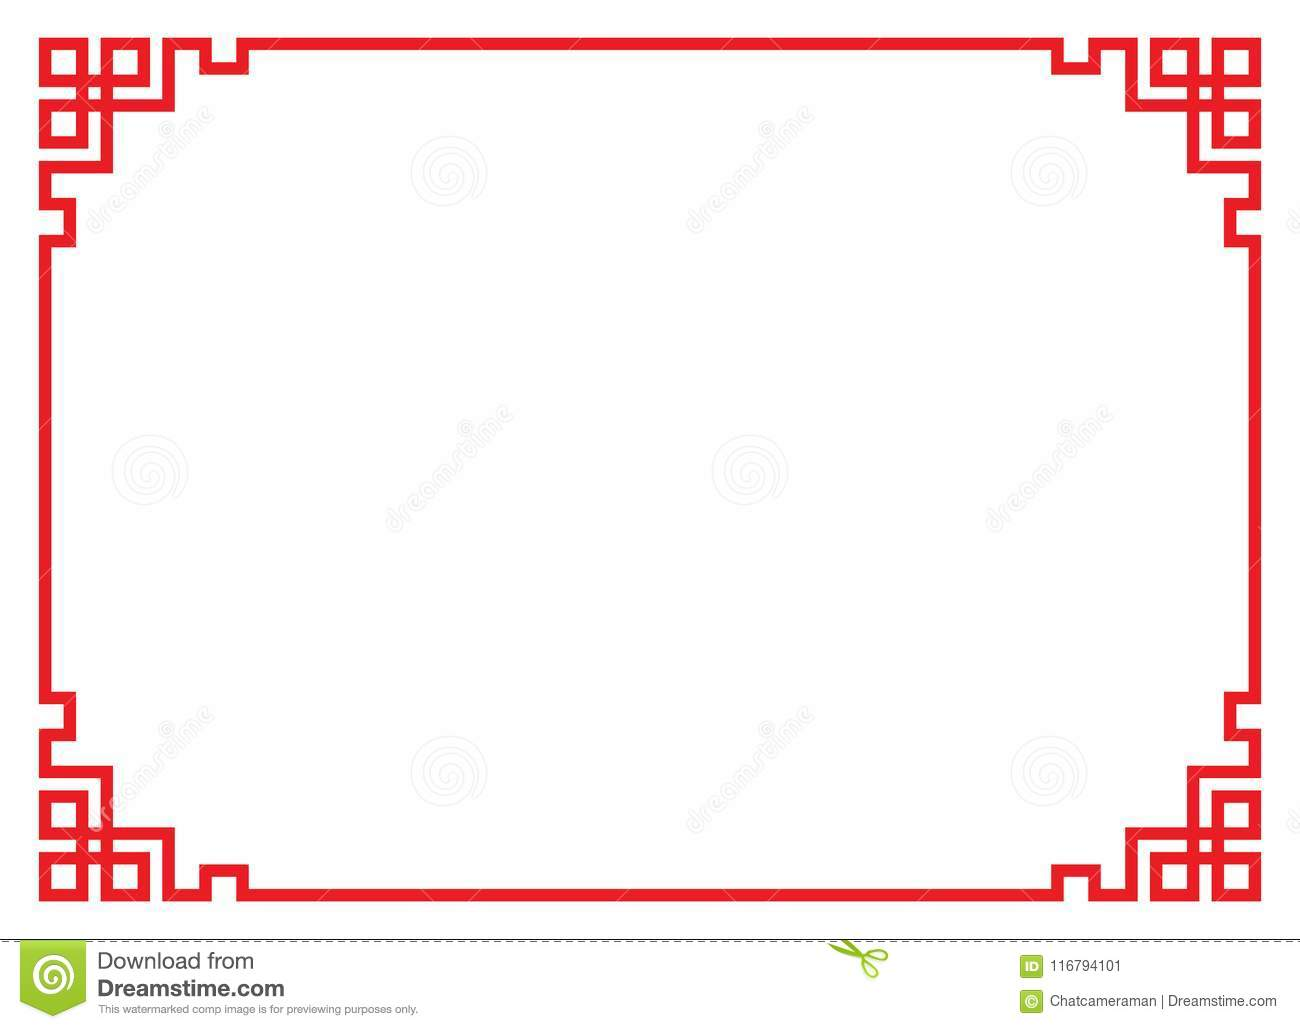 China border frame stock vector. Illustration of isolated - 116794101